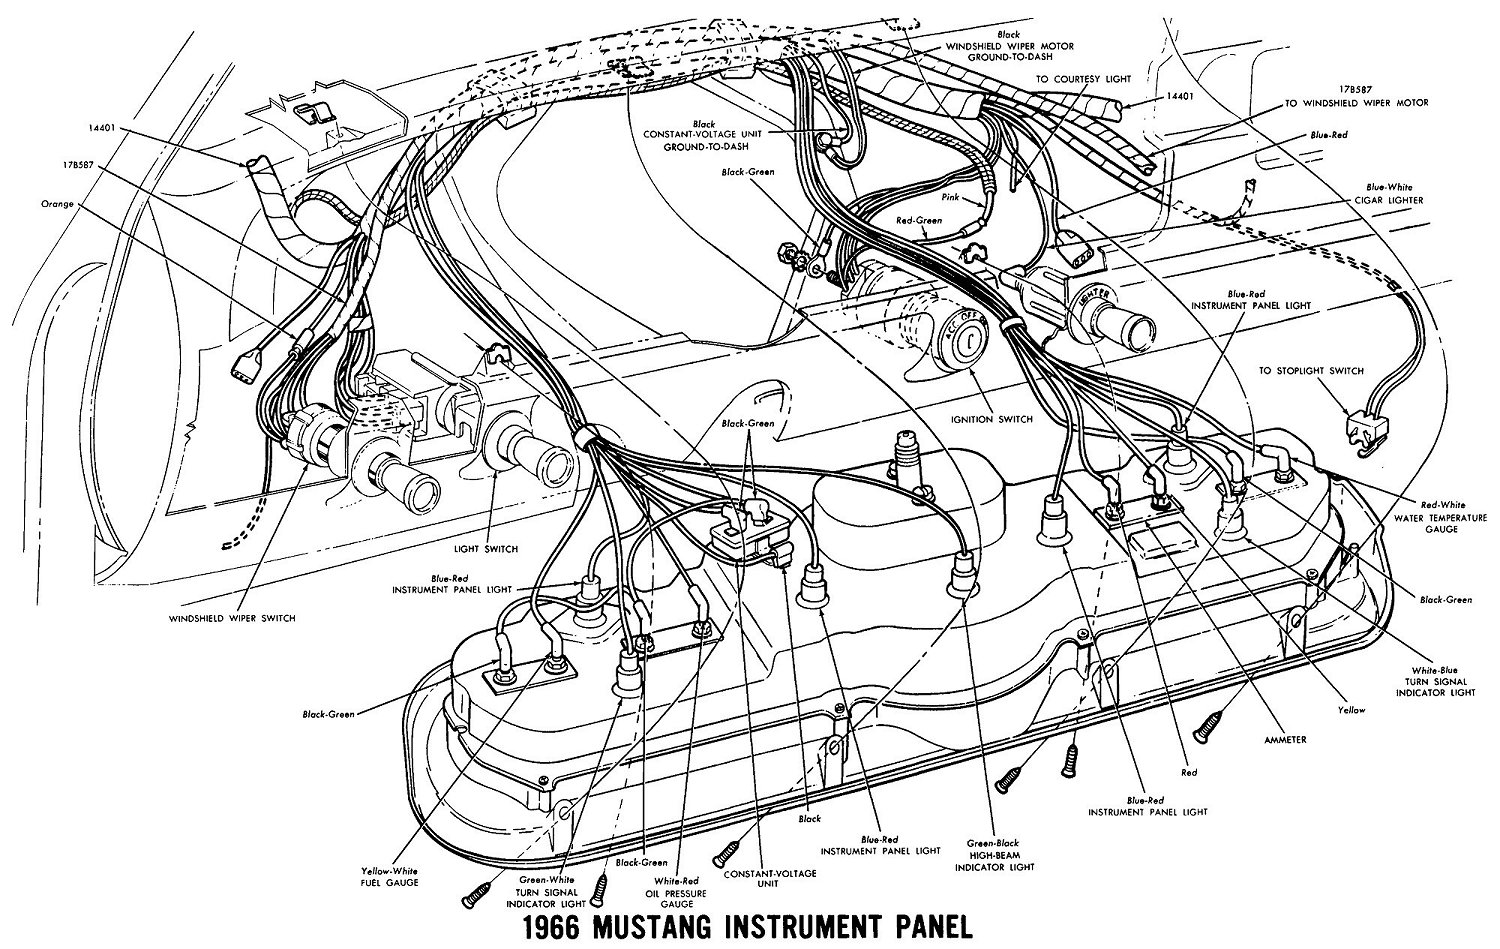 66instr vintage mustang wiring diagrams 1970 mustang wiring diagram at alyssarenee.co